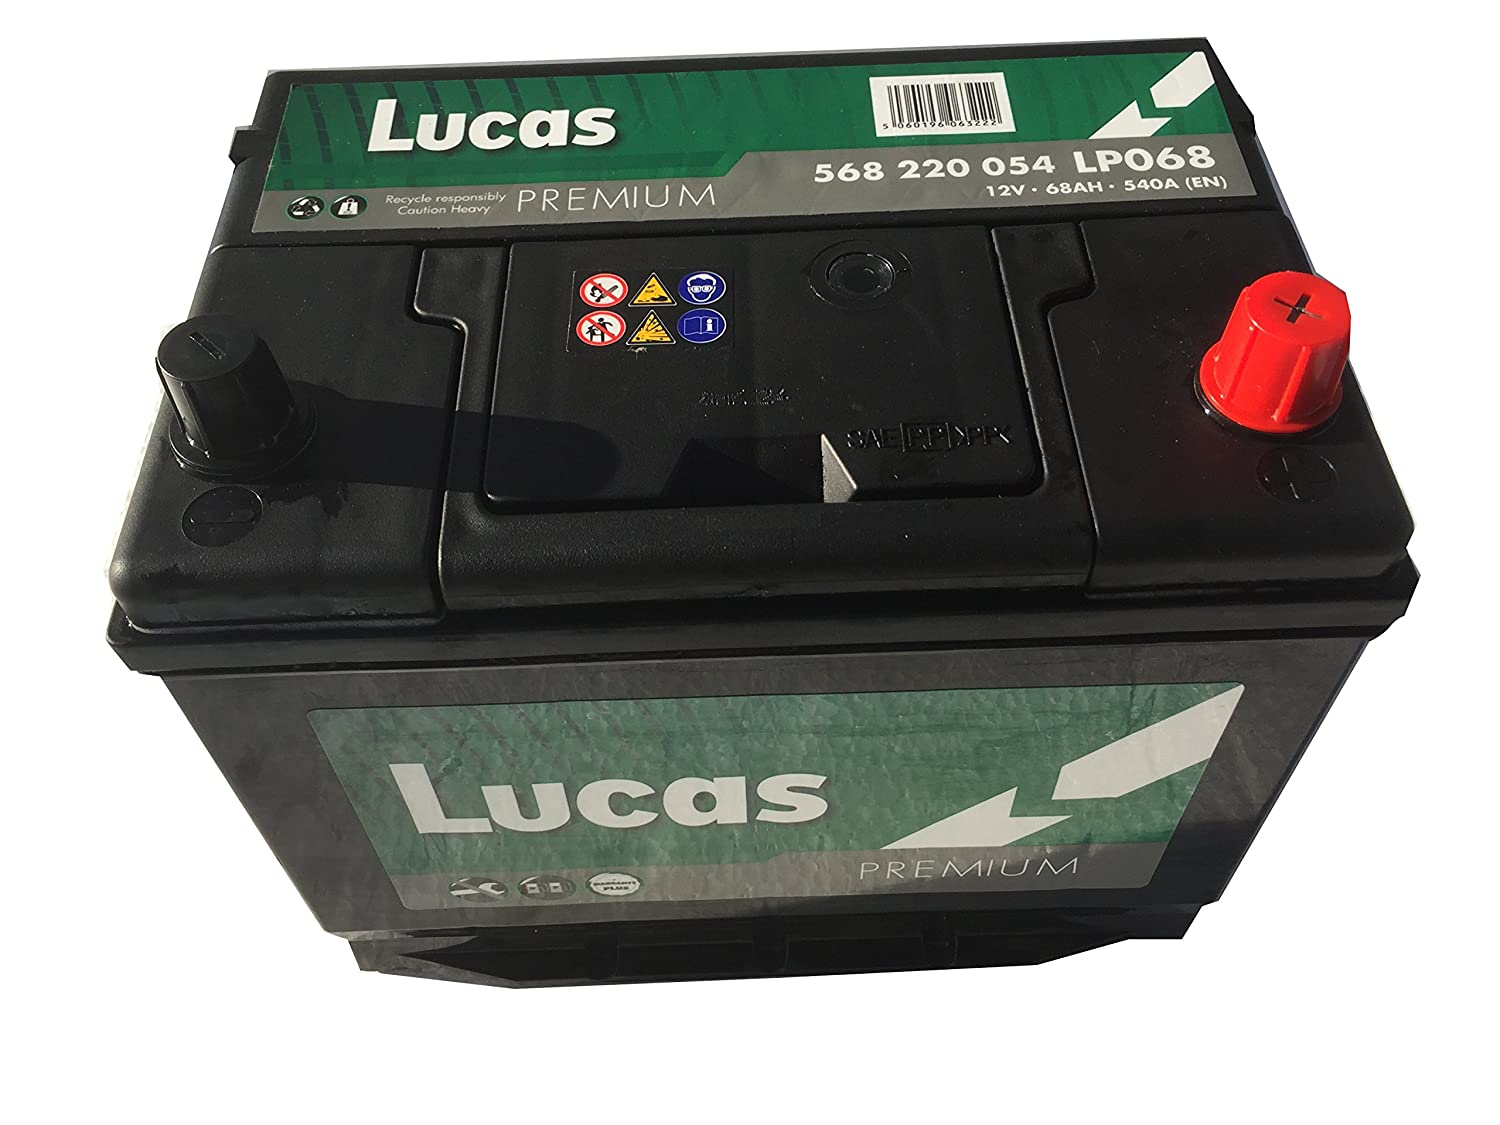 LP068 Lucas Premium Car Battery 12 V 68AH